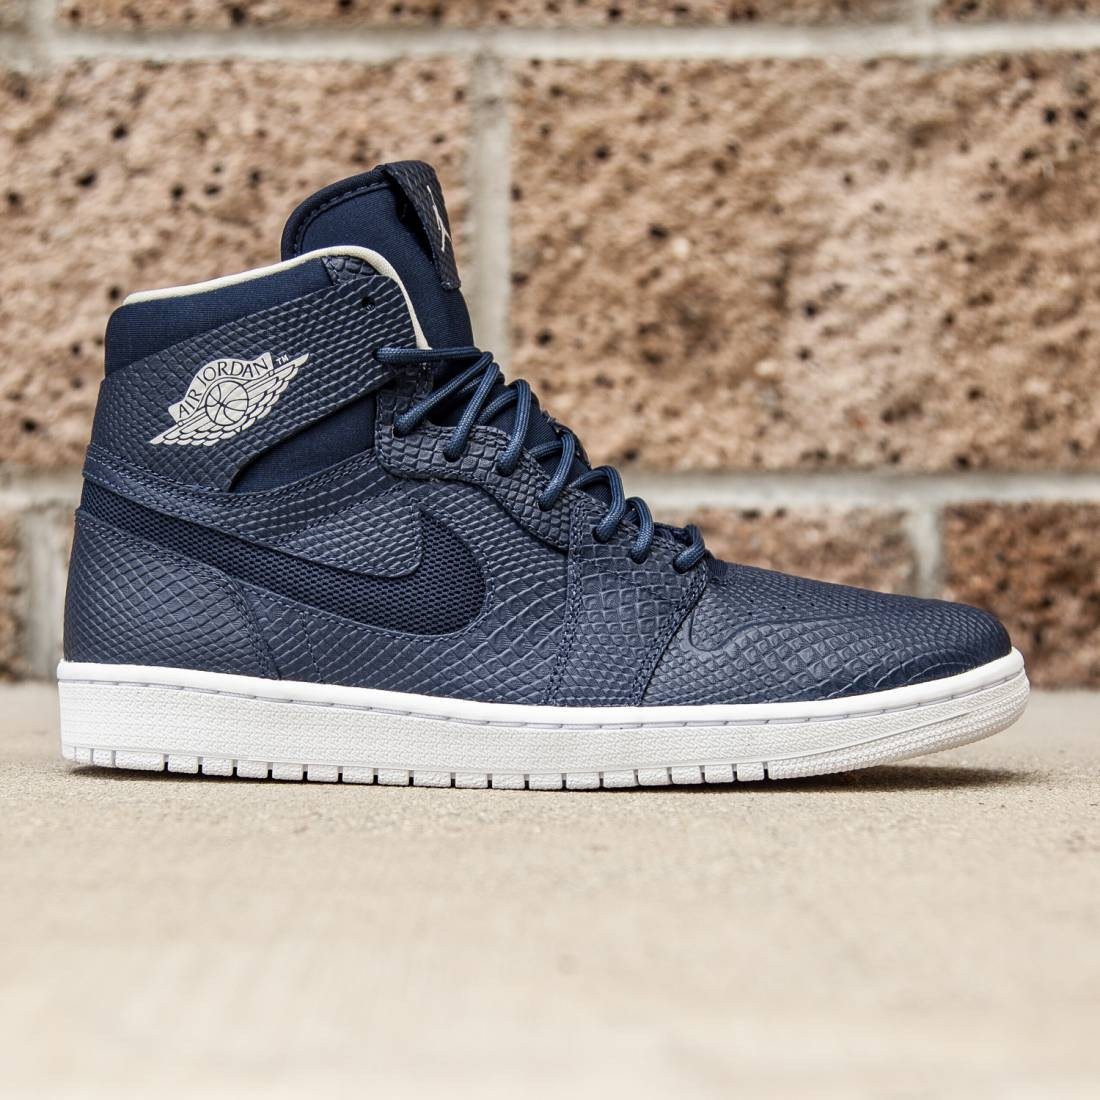 super popular 844cc c5e14 Jordan Men Air Jordan 1 Retro High Nouveau (midnight navy   white    infrared 23   light bone)